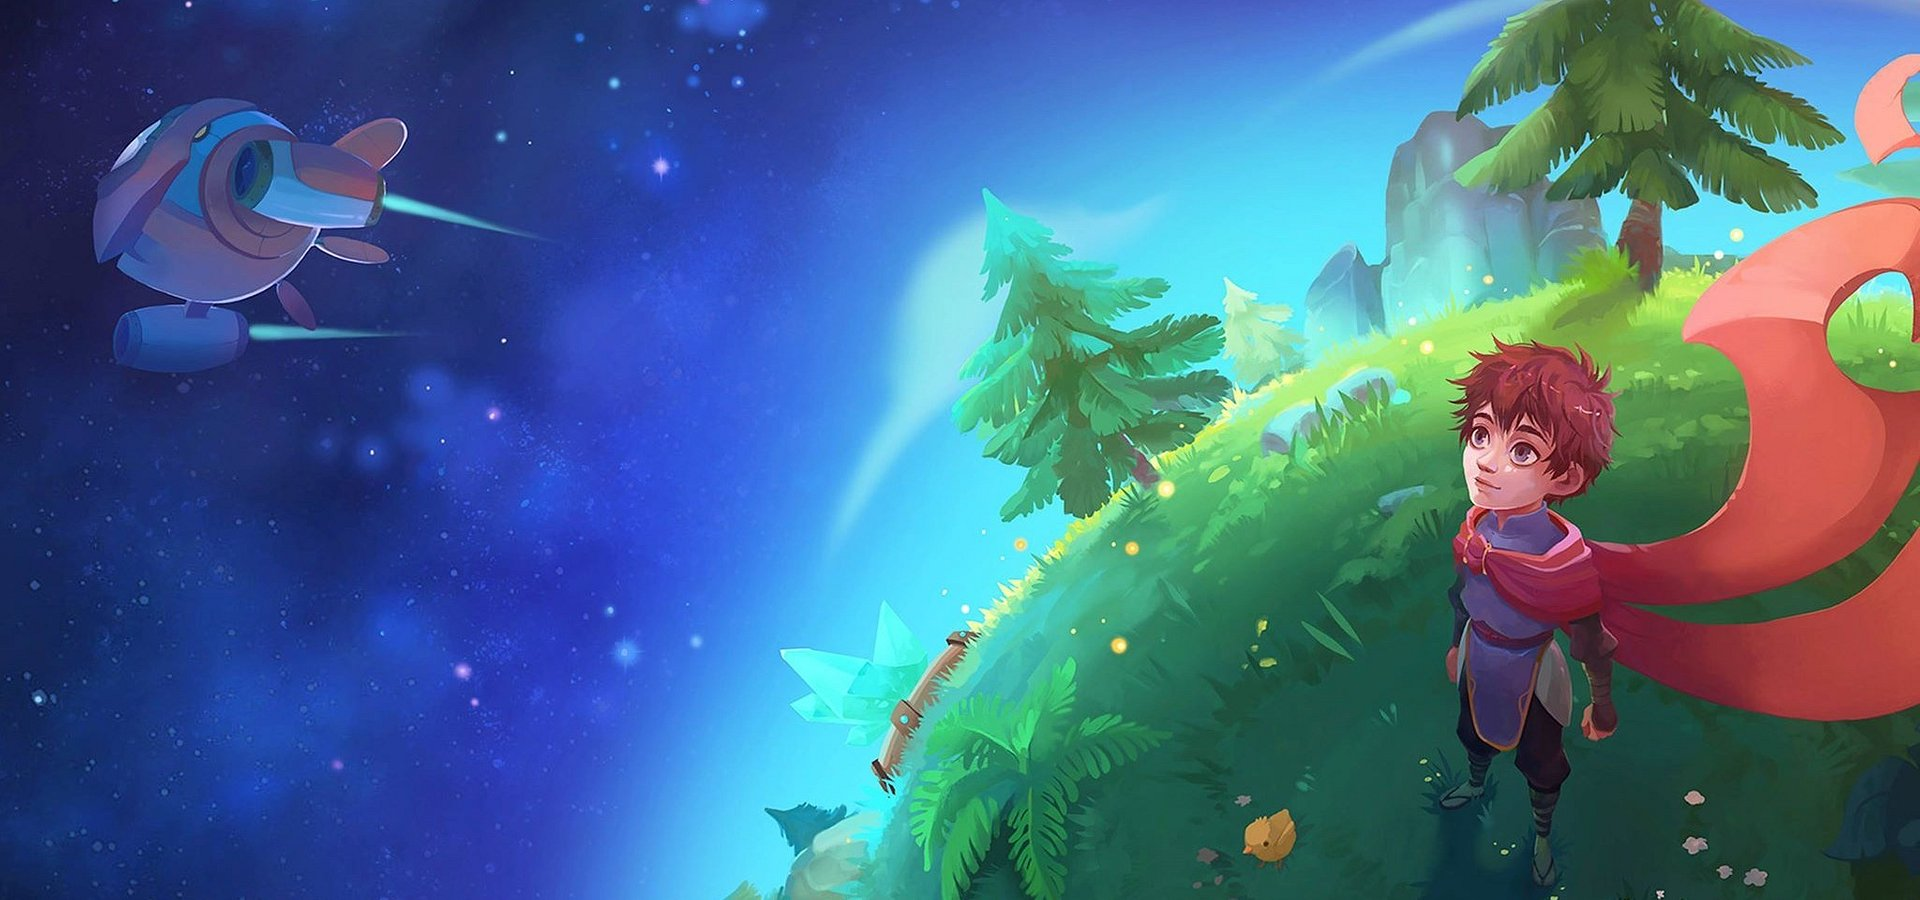 To support the fight against Covid-19, the game Deiland will be free on Steam